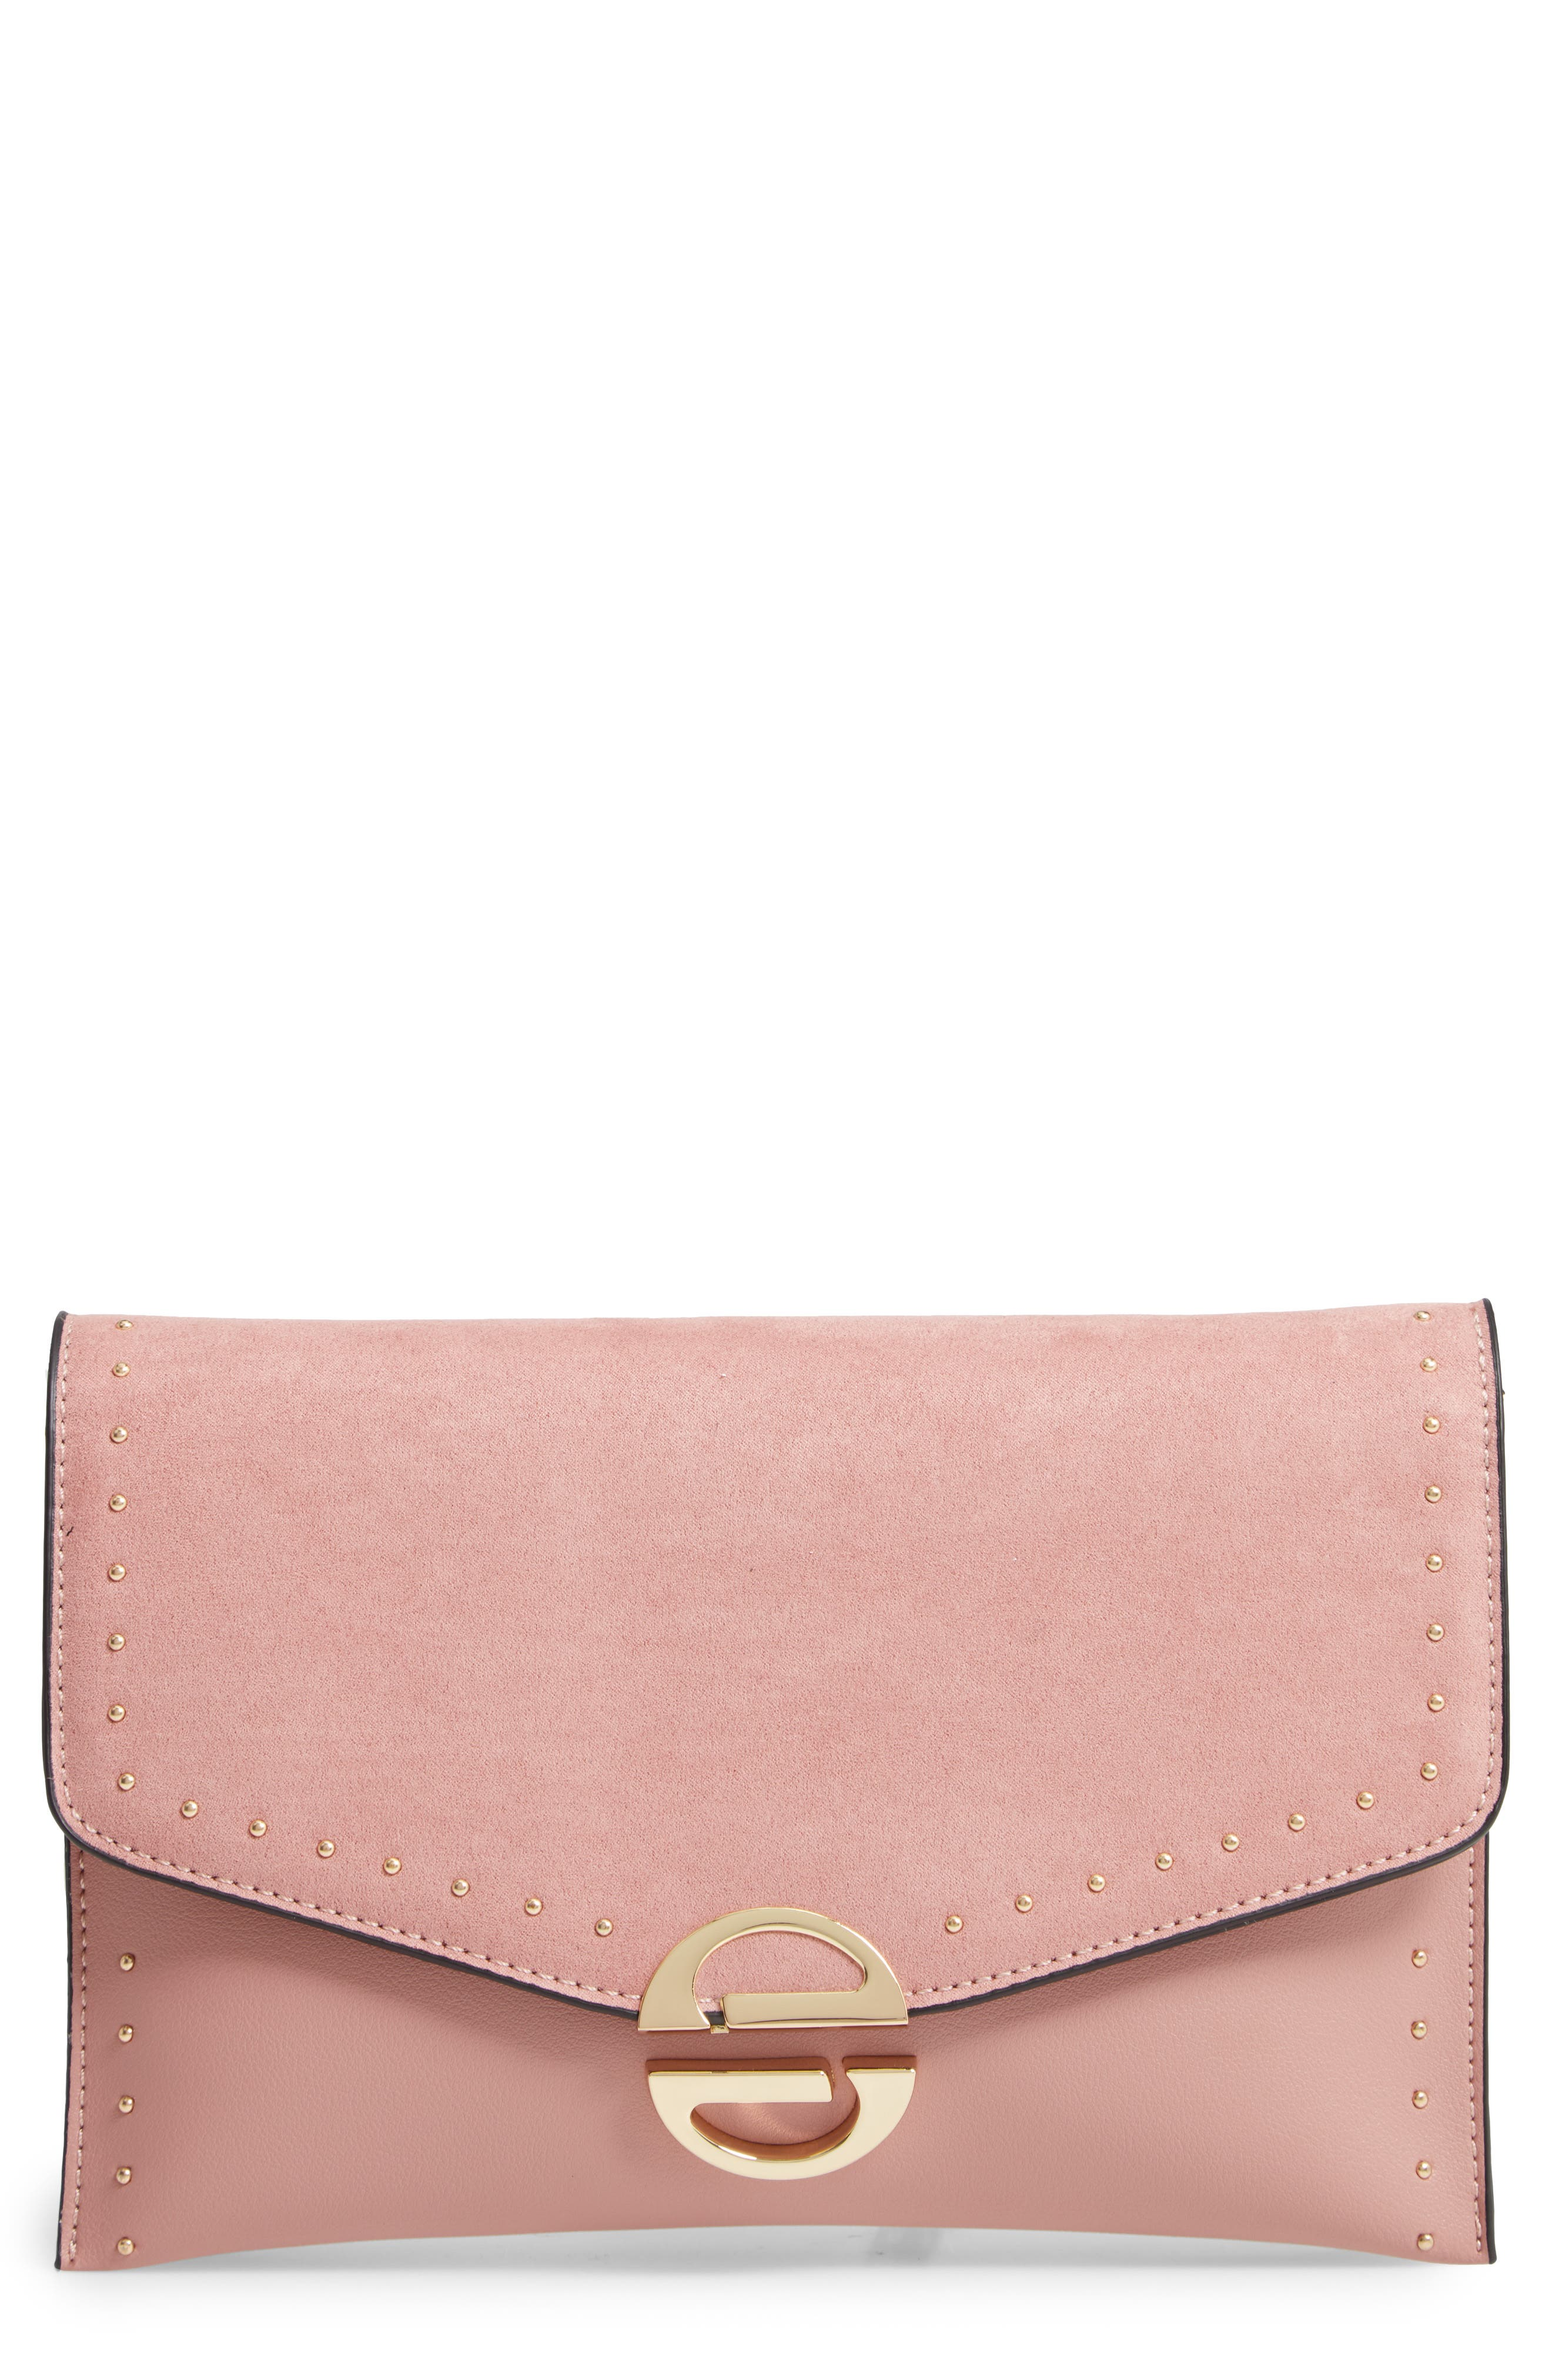 a6707968800e Topshop Handbags & Wallets for Women | Nordstrom